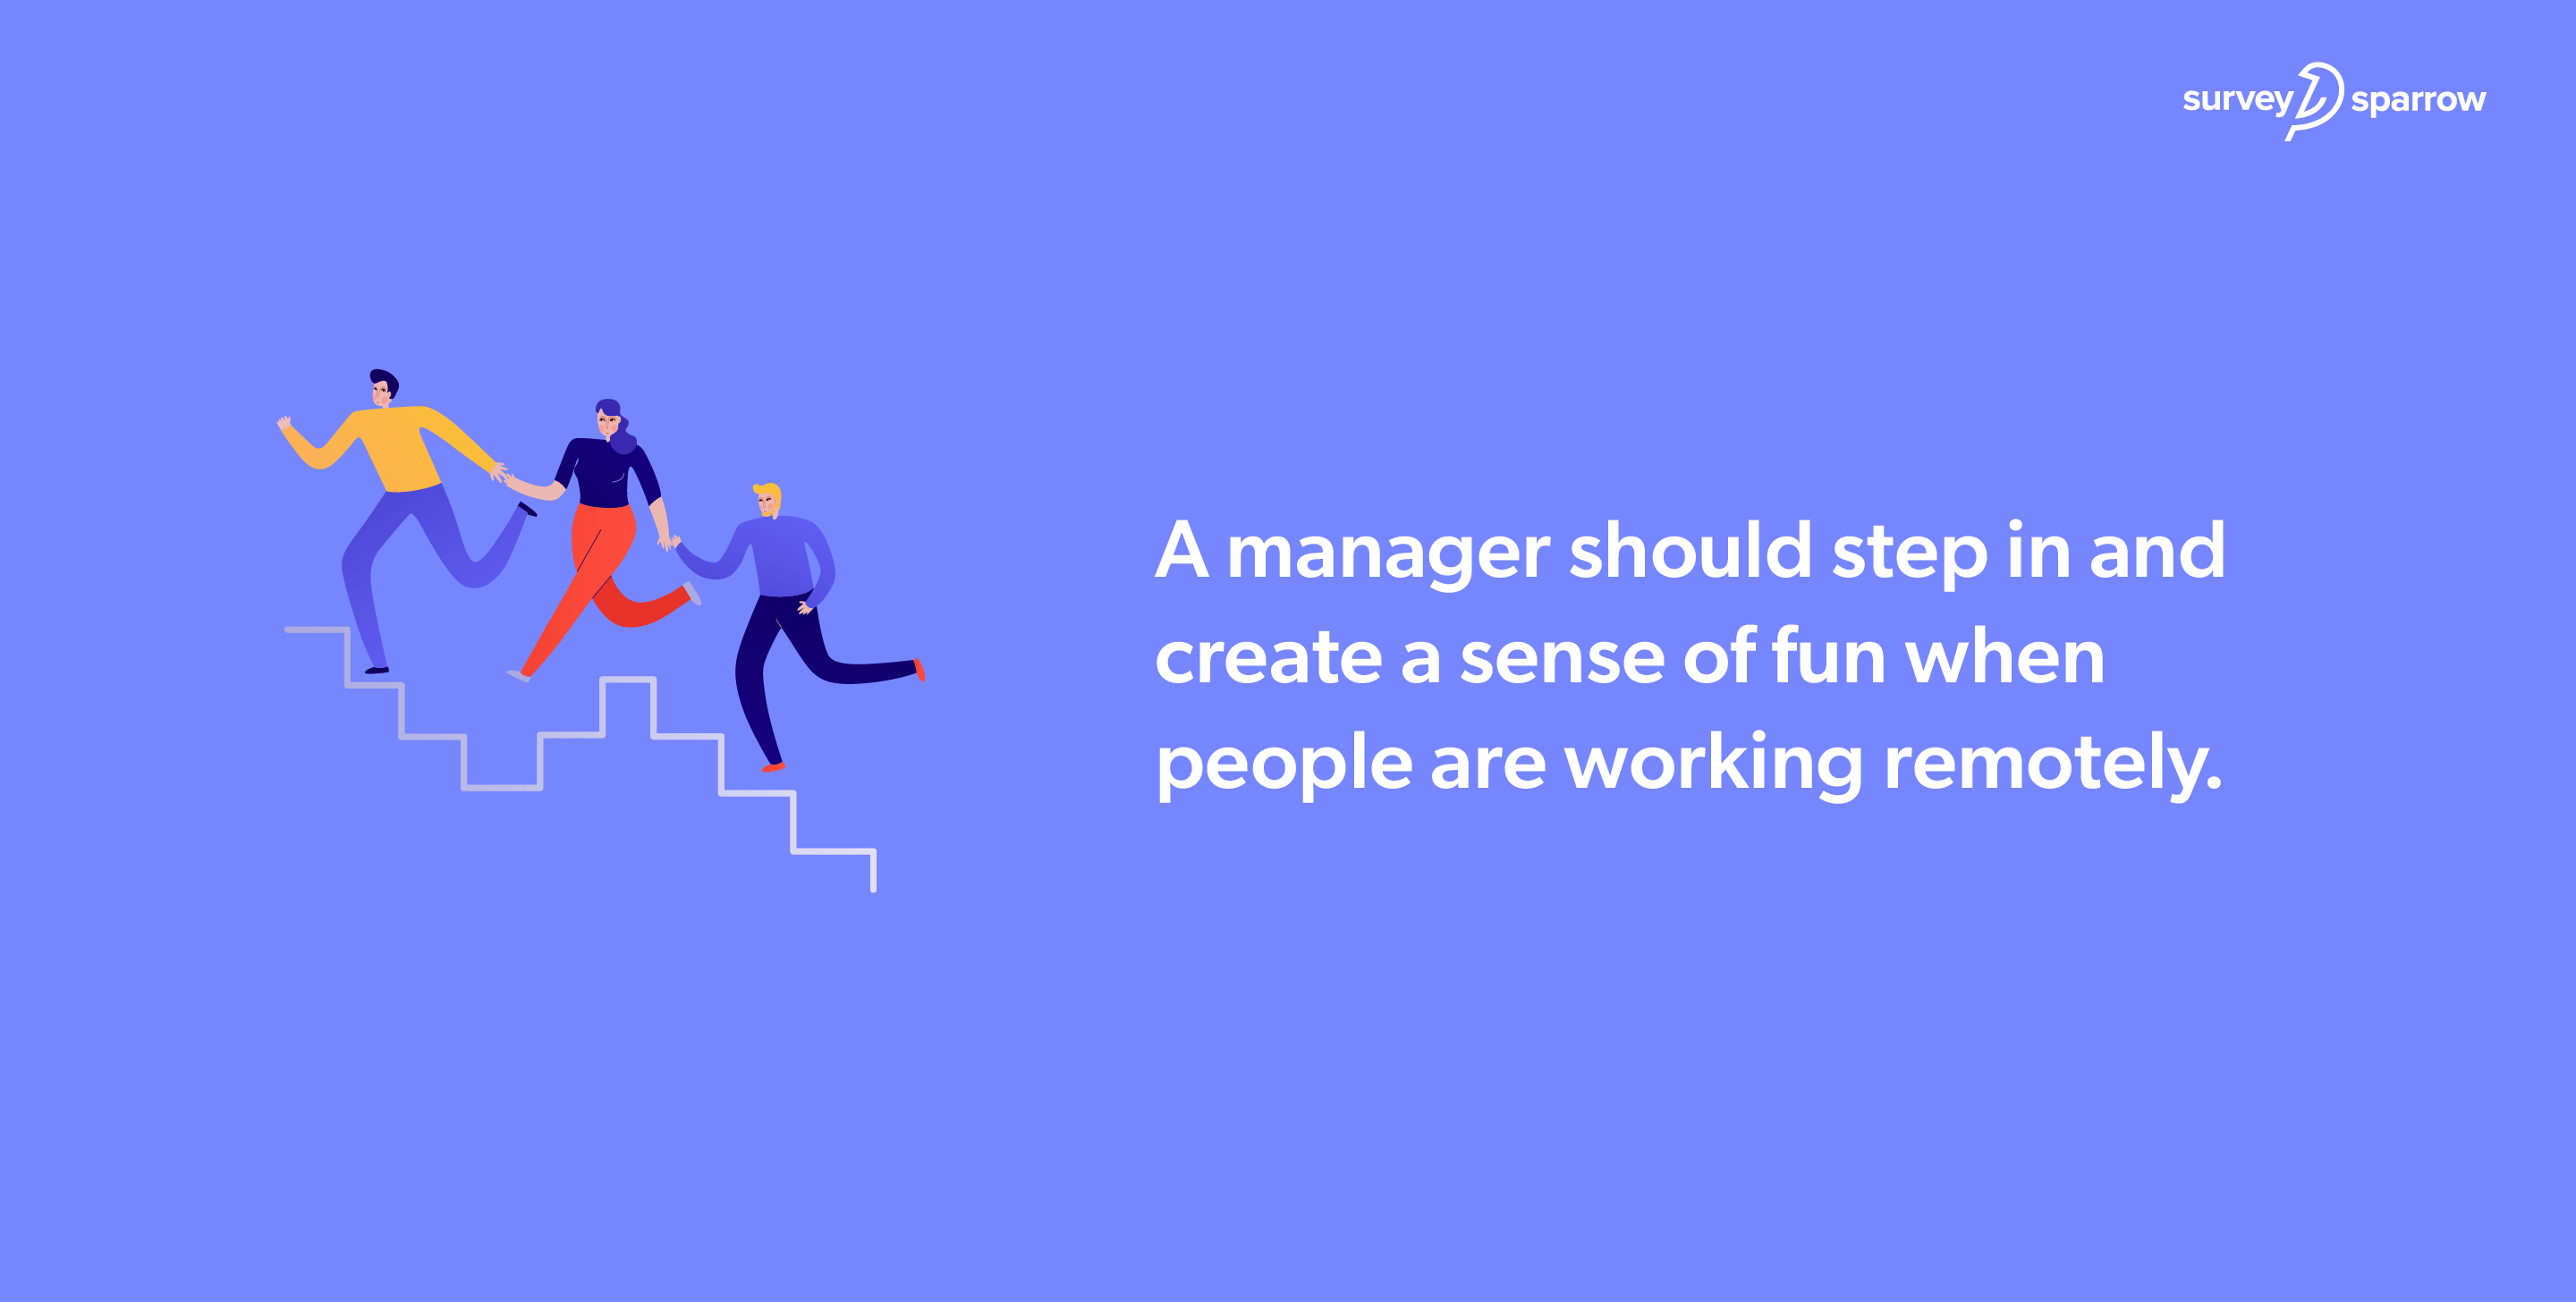 A manager should step in and create a sense of fun when people are working remotely.